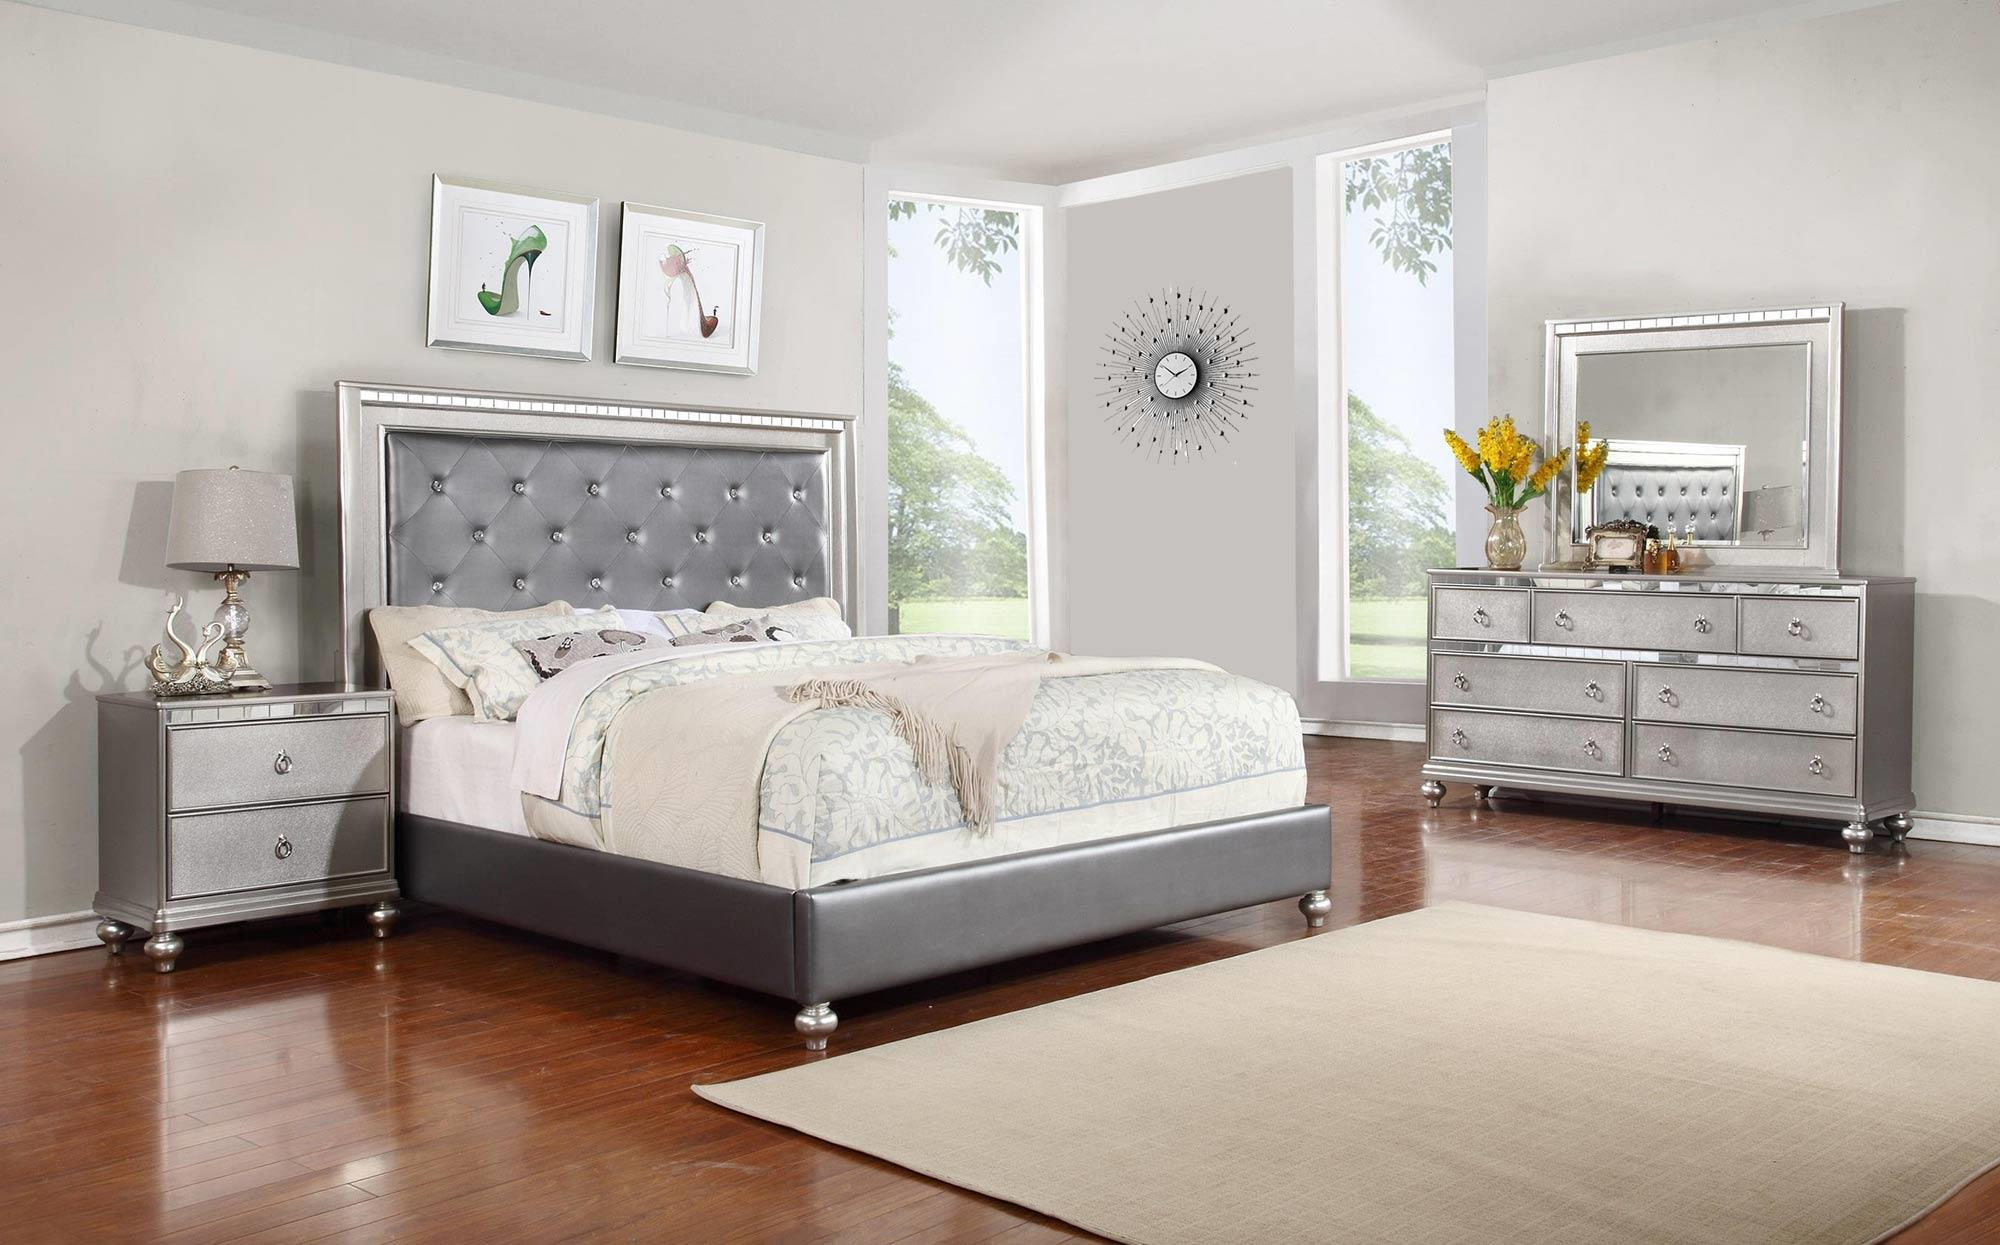 Lifestyle Glam 4 Piece Queen Bedroom Set   Item Number: C4183A Q